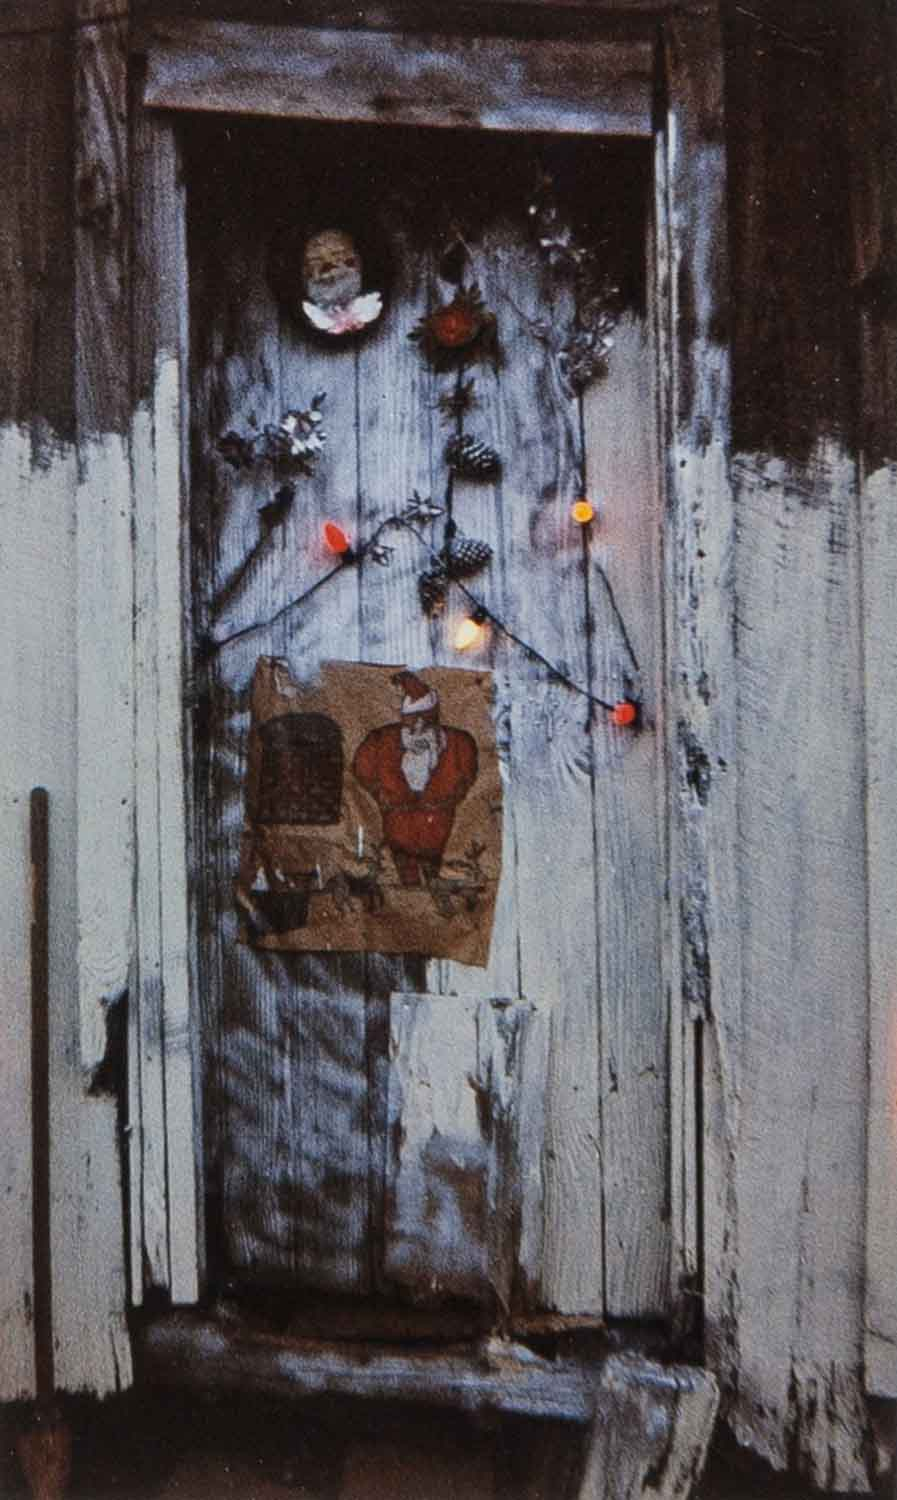 Door of House at Christmas Time, Greensboro, AL